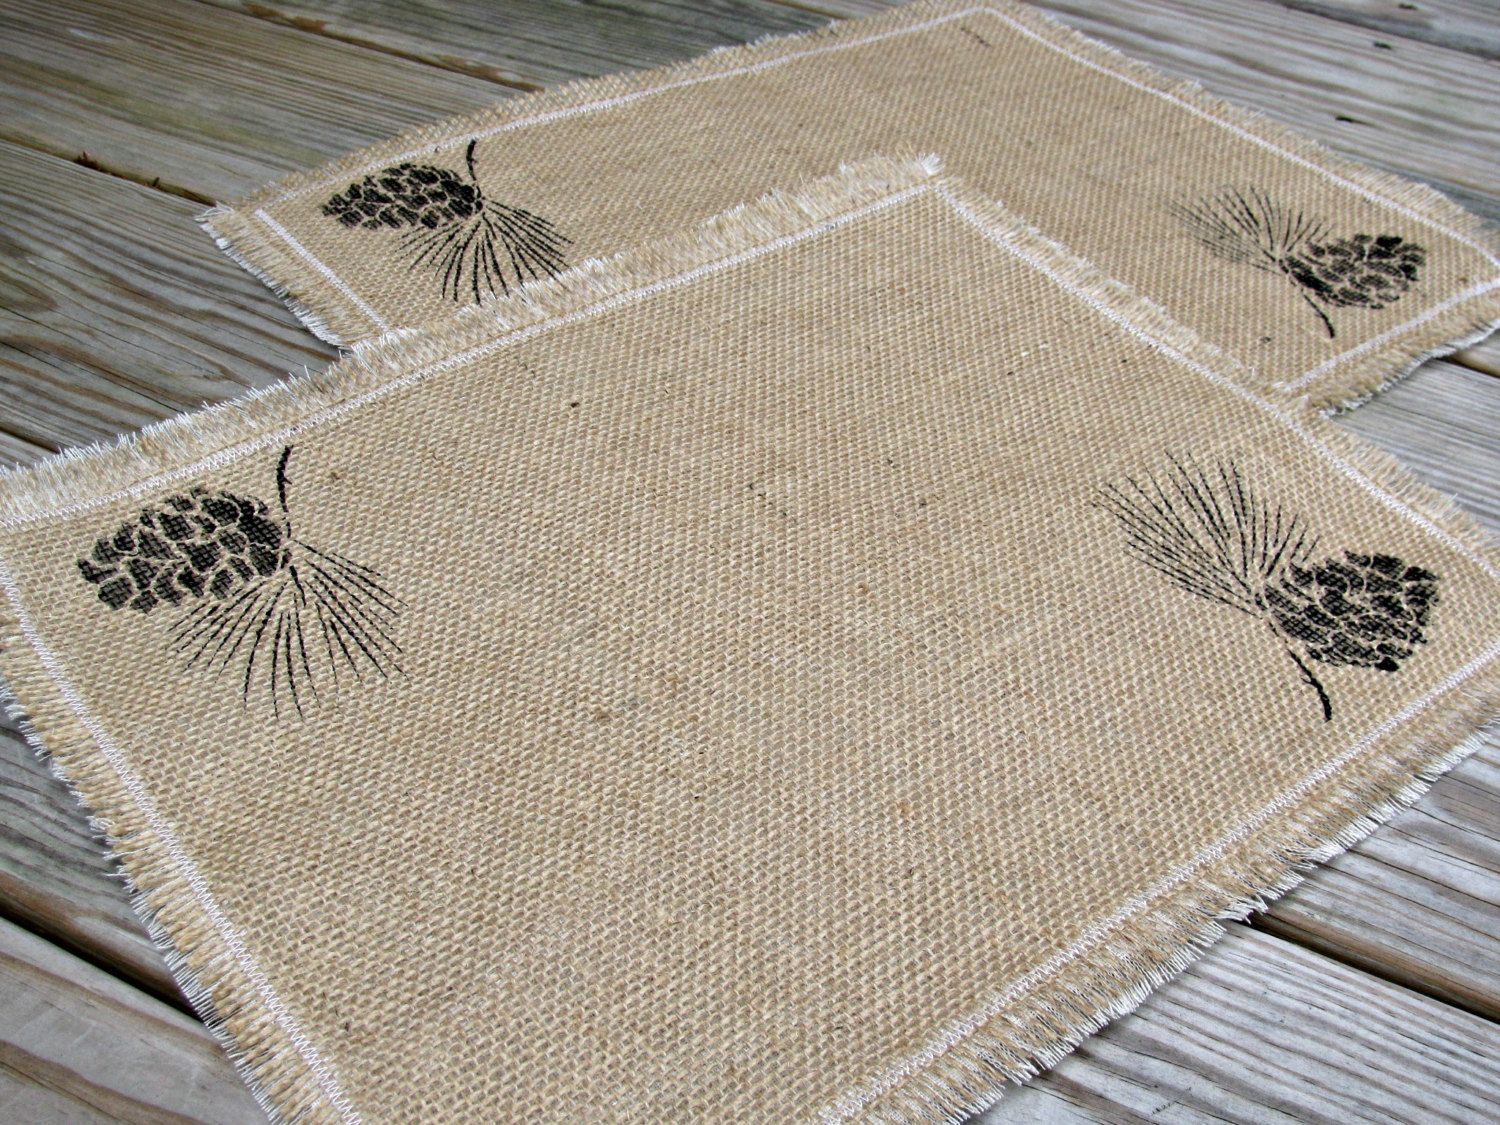 Burlap Placemats Burlap Table Mats Dining Table Placemats Etsy Rustic Table Decor Fabric Placemats Dining Table Placemats